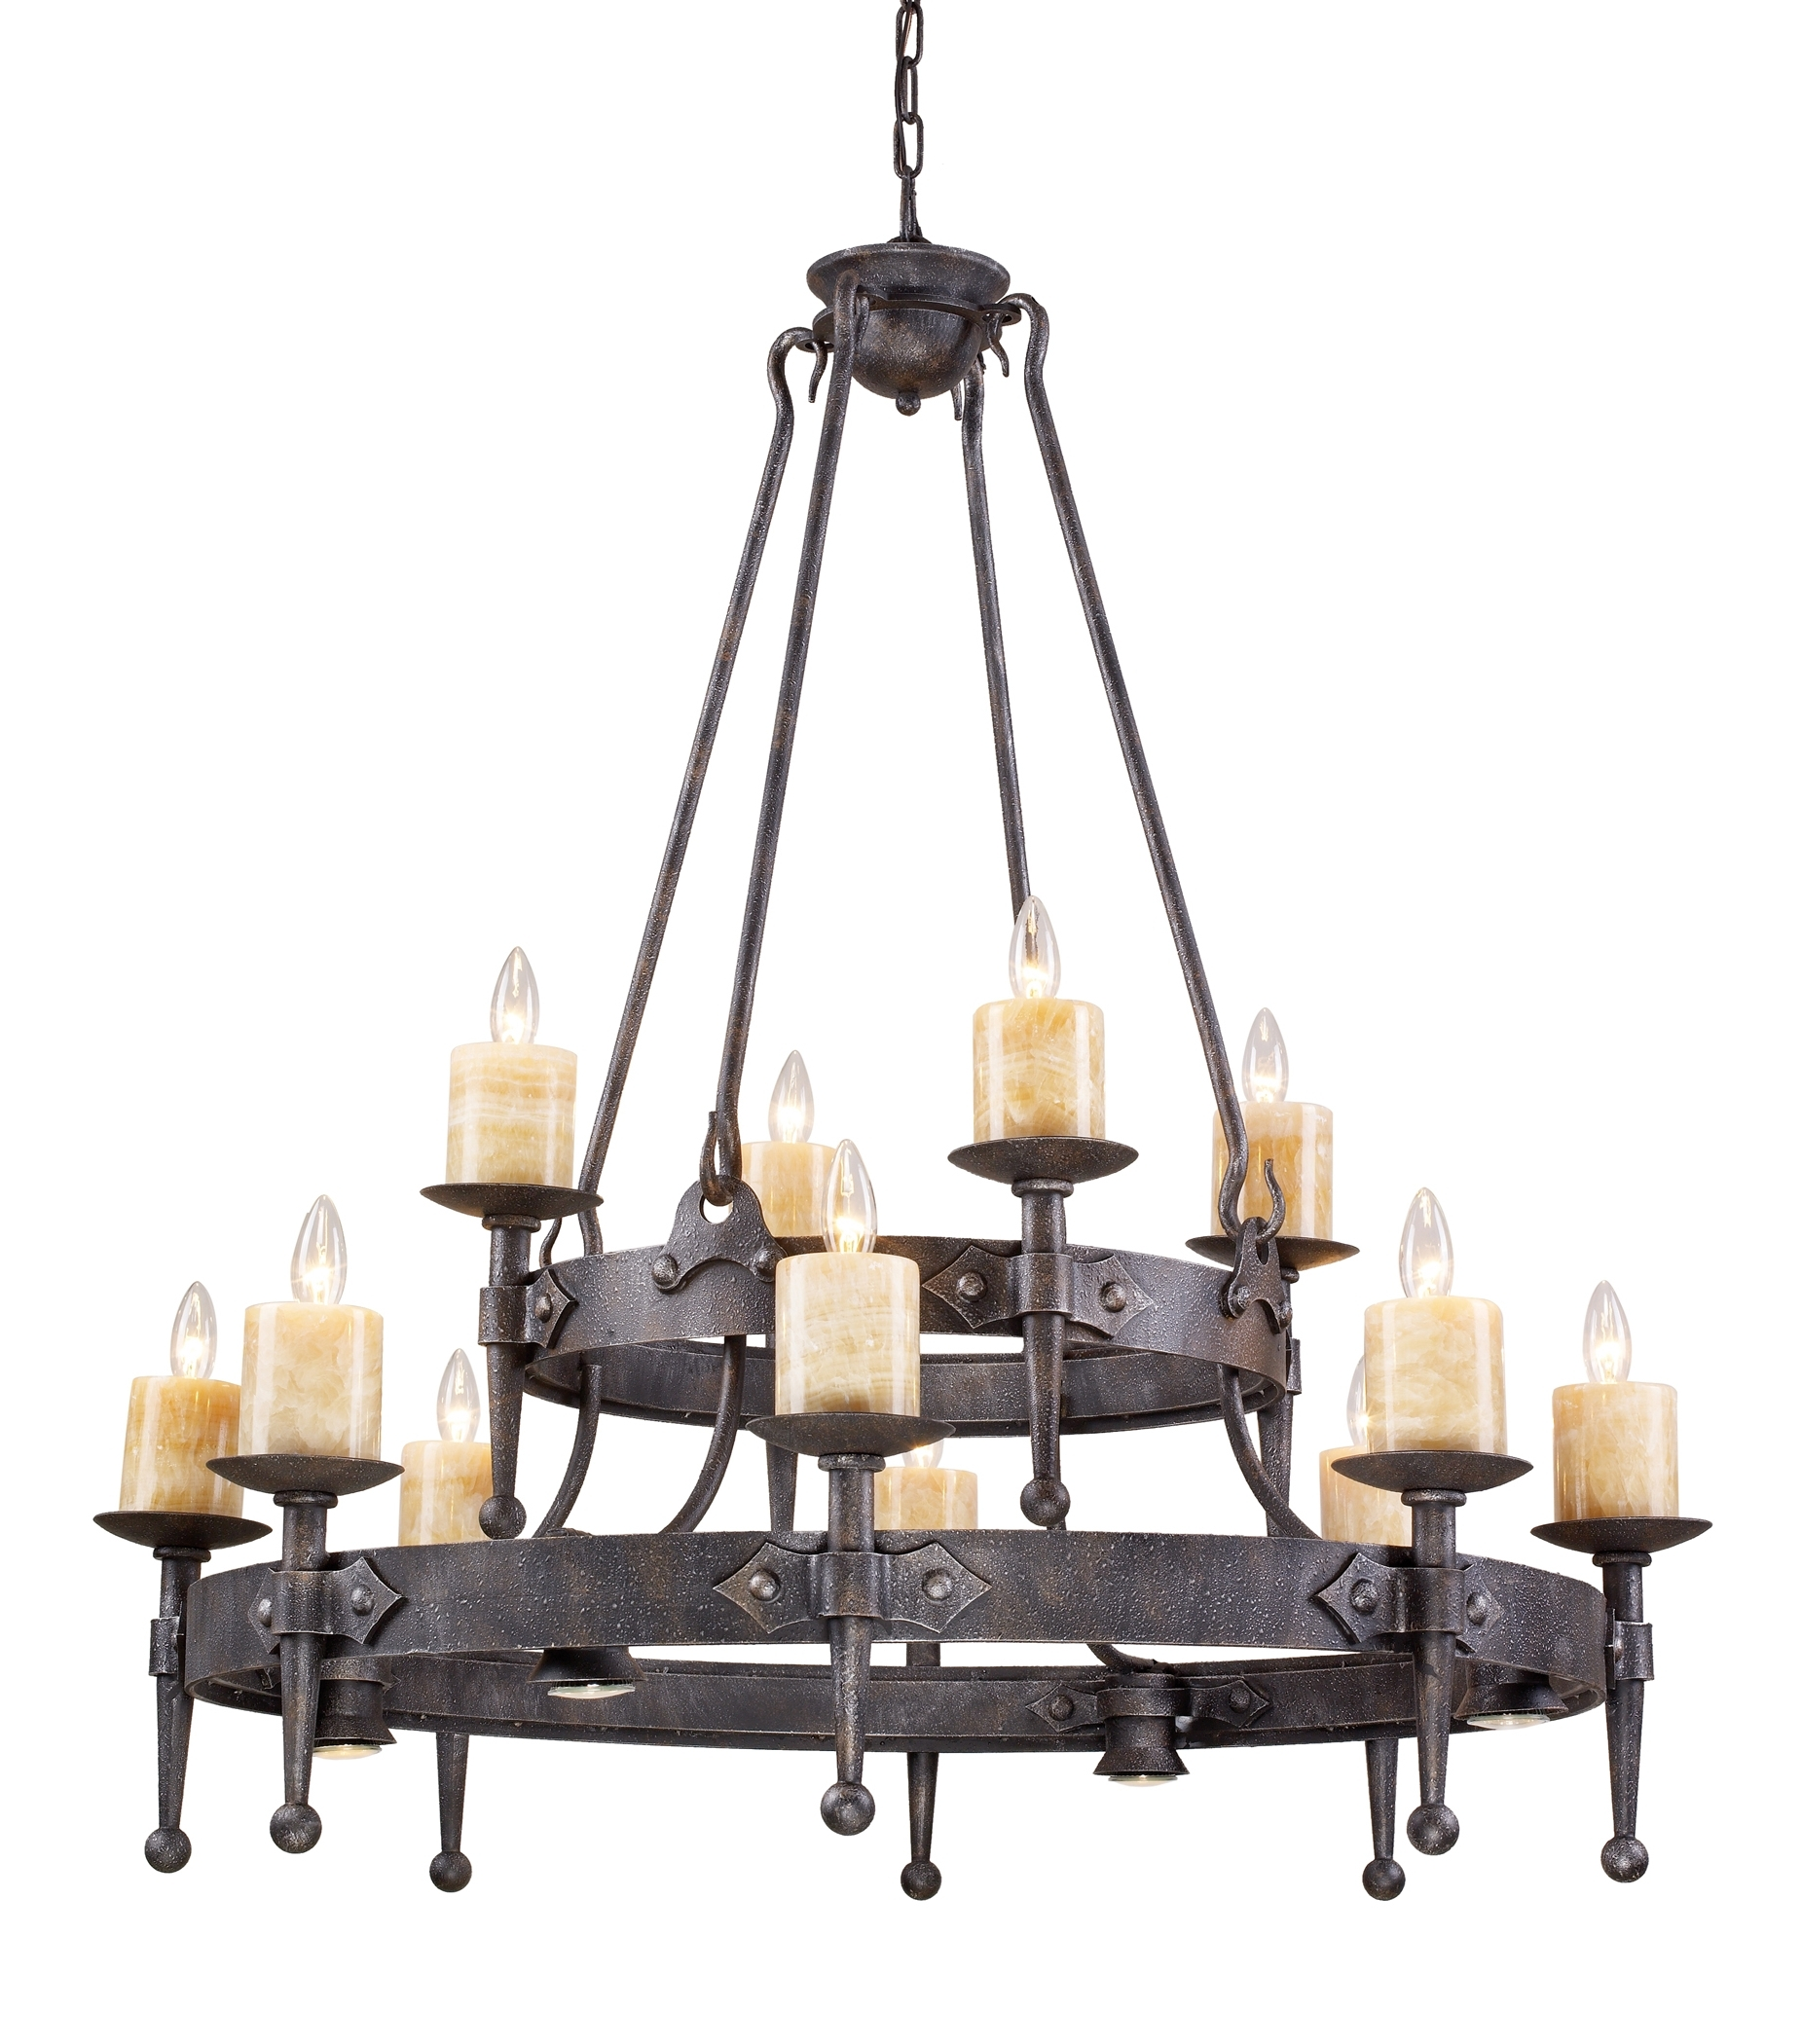 Modern Wrought Iron Chandeliers Intended For Most Up To Date Contemporary Rustic Wrought Iron Chandelier Throughout Wooden (View 6 of 15)